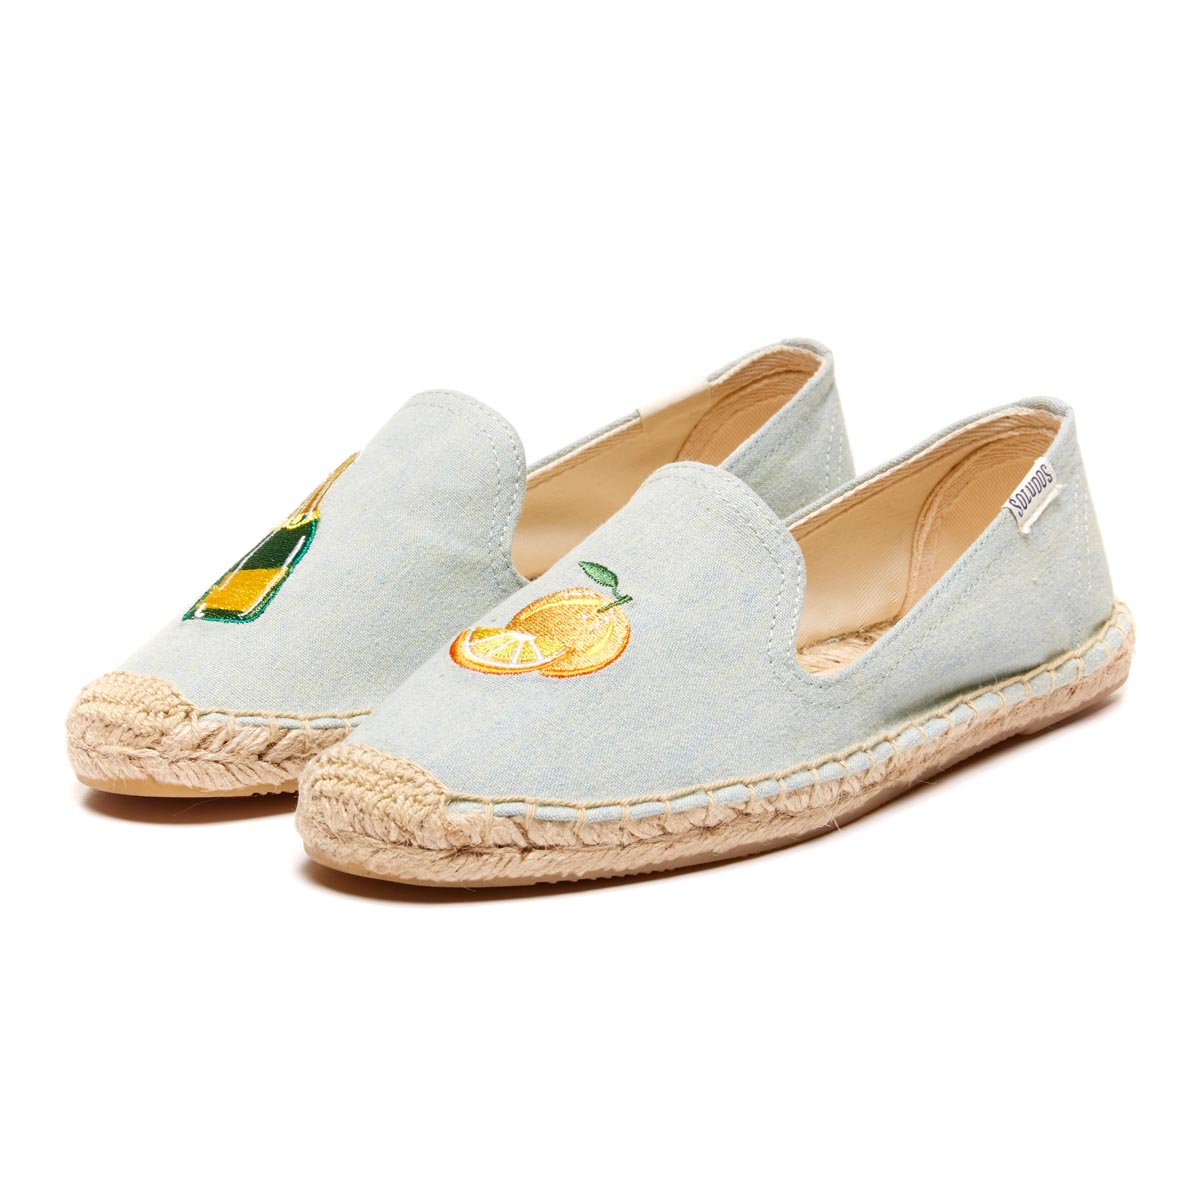 4caa1b4f990 Soludos Smoking Slipper Embroidery in Yellow - Lyst